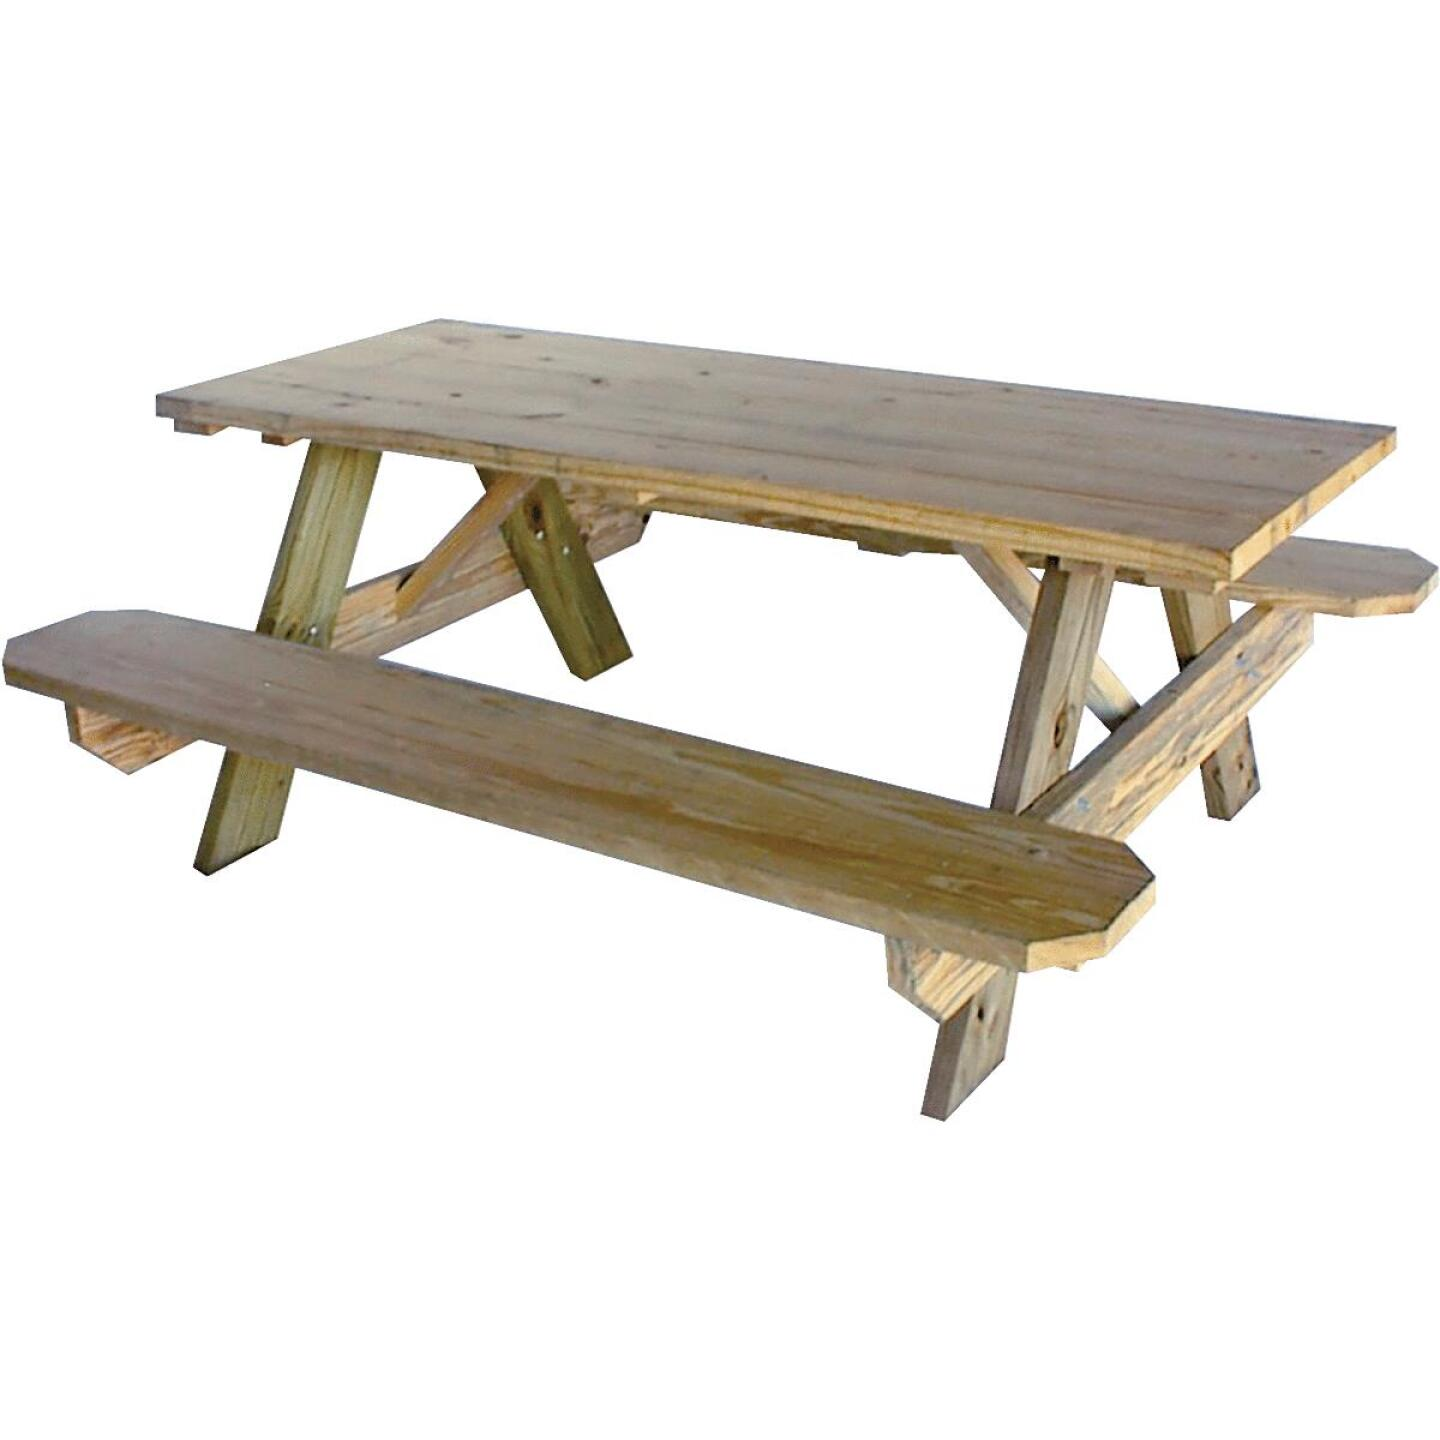 Outdoor Essentials 6 Ft. Pressure-Treated Wood Picnic Table with Benches Image 1